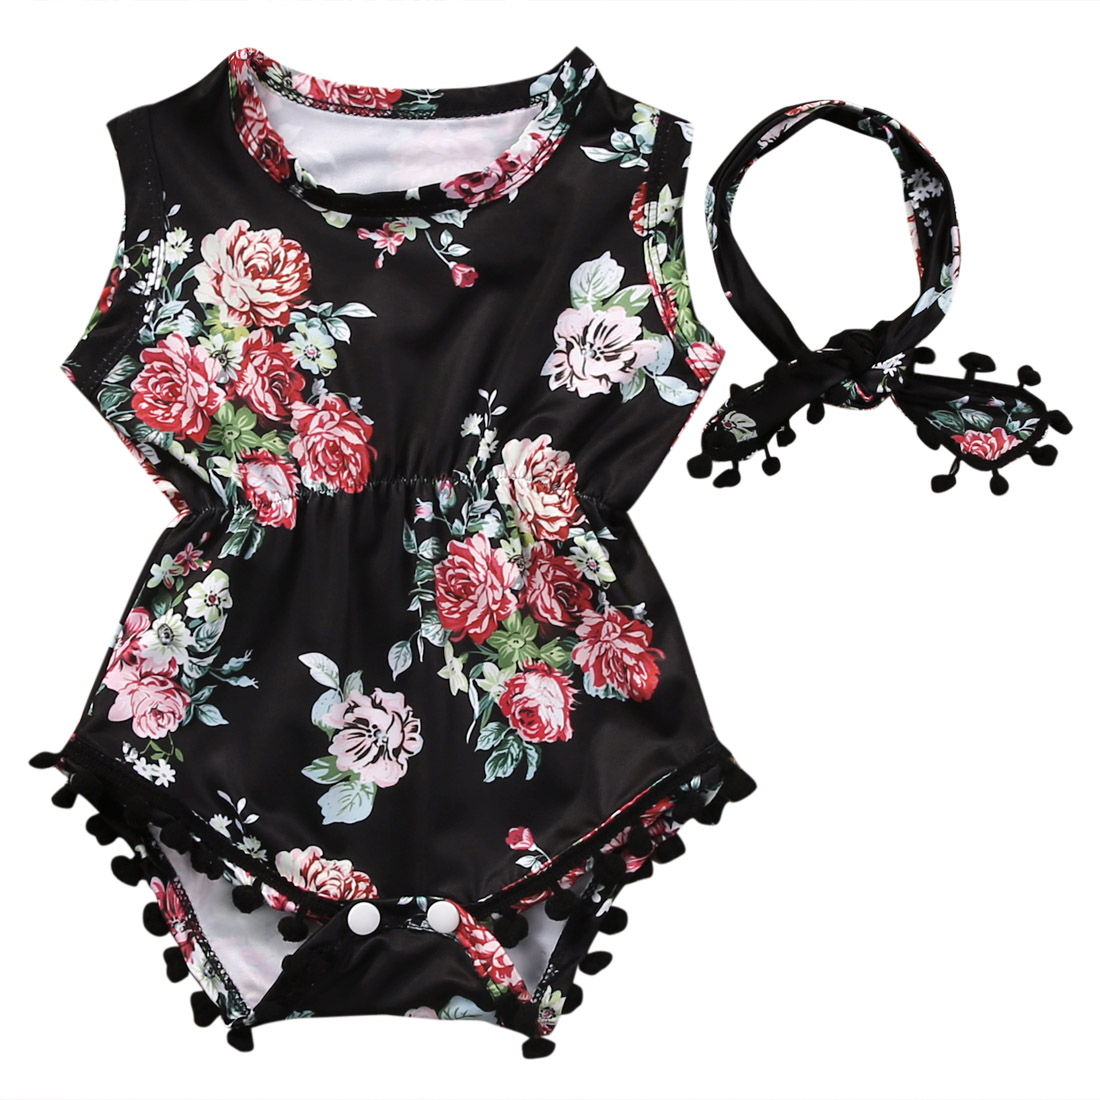 Newborn VIntage Purple Flowers Floral Baby Girls Clothes Clothing Romper Sunsuit One-pieces With Headband Outfits Set Wholesale philips hp 8697